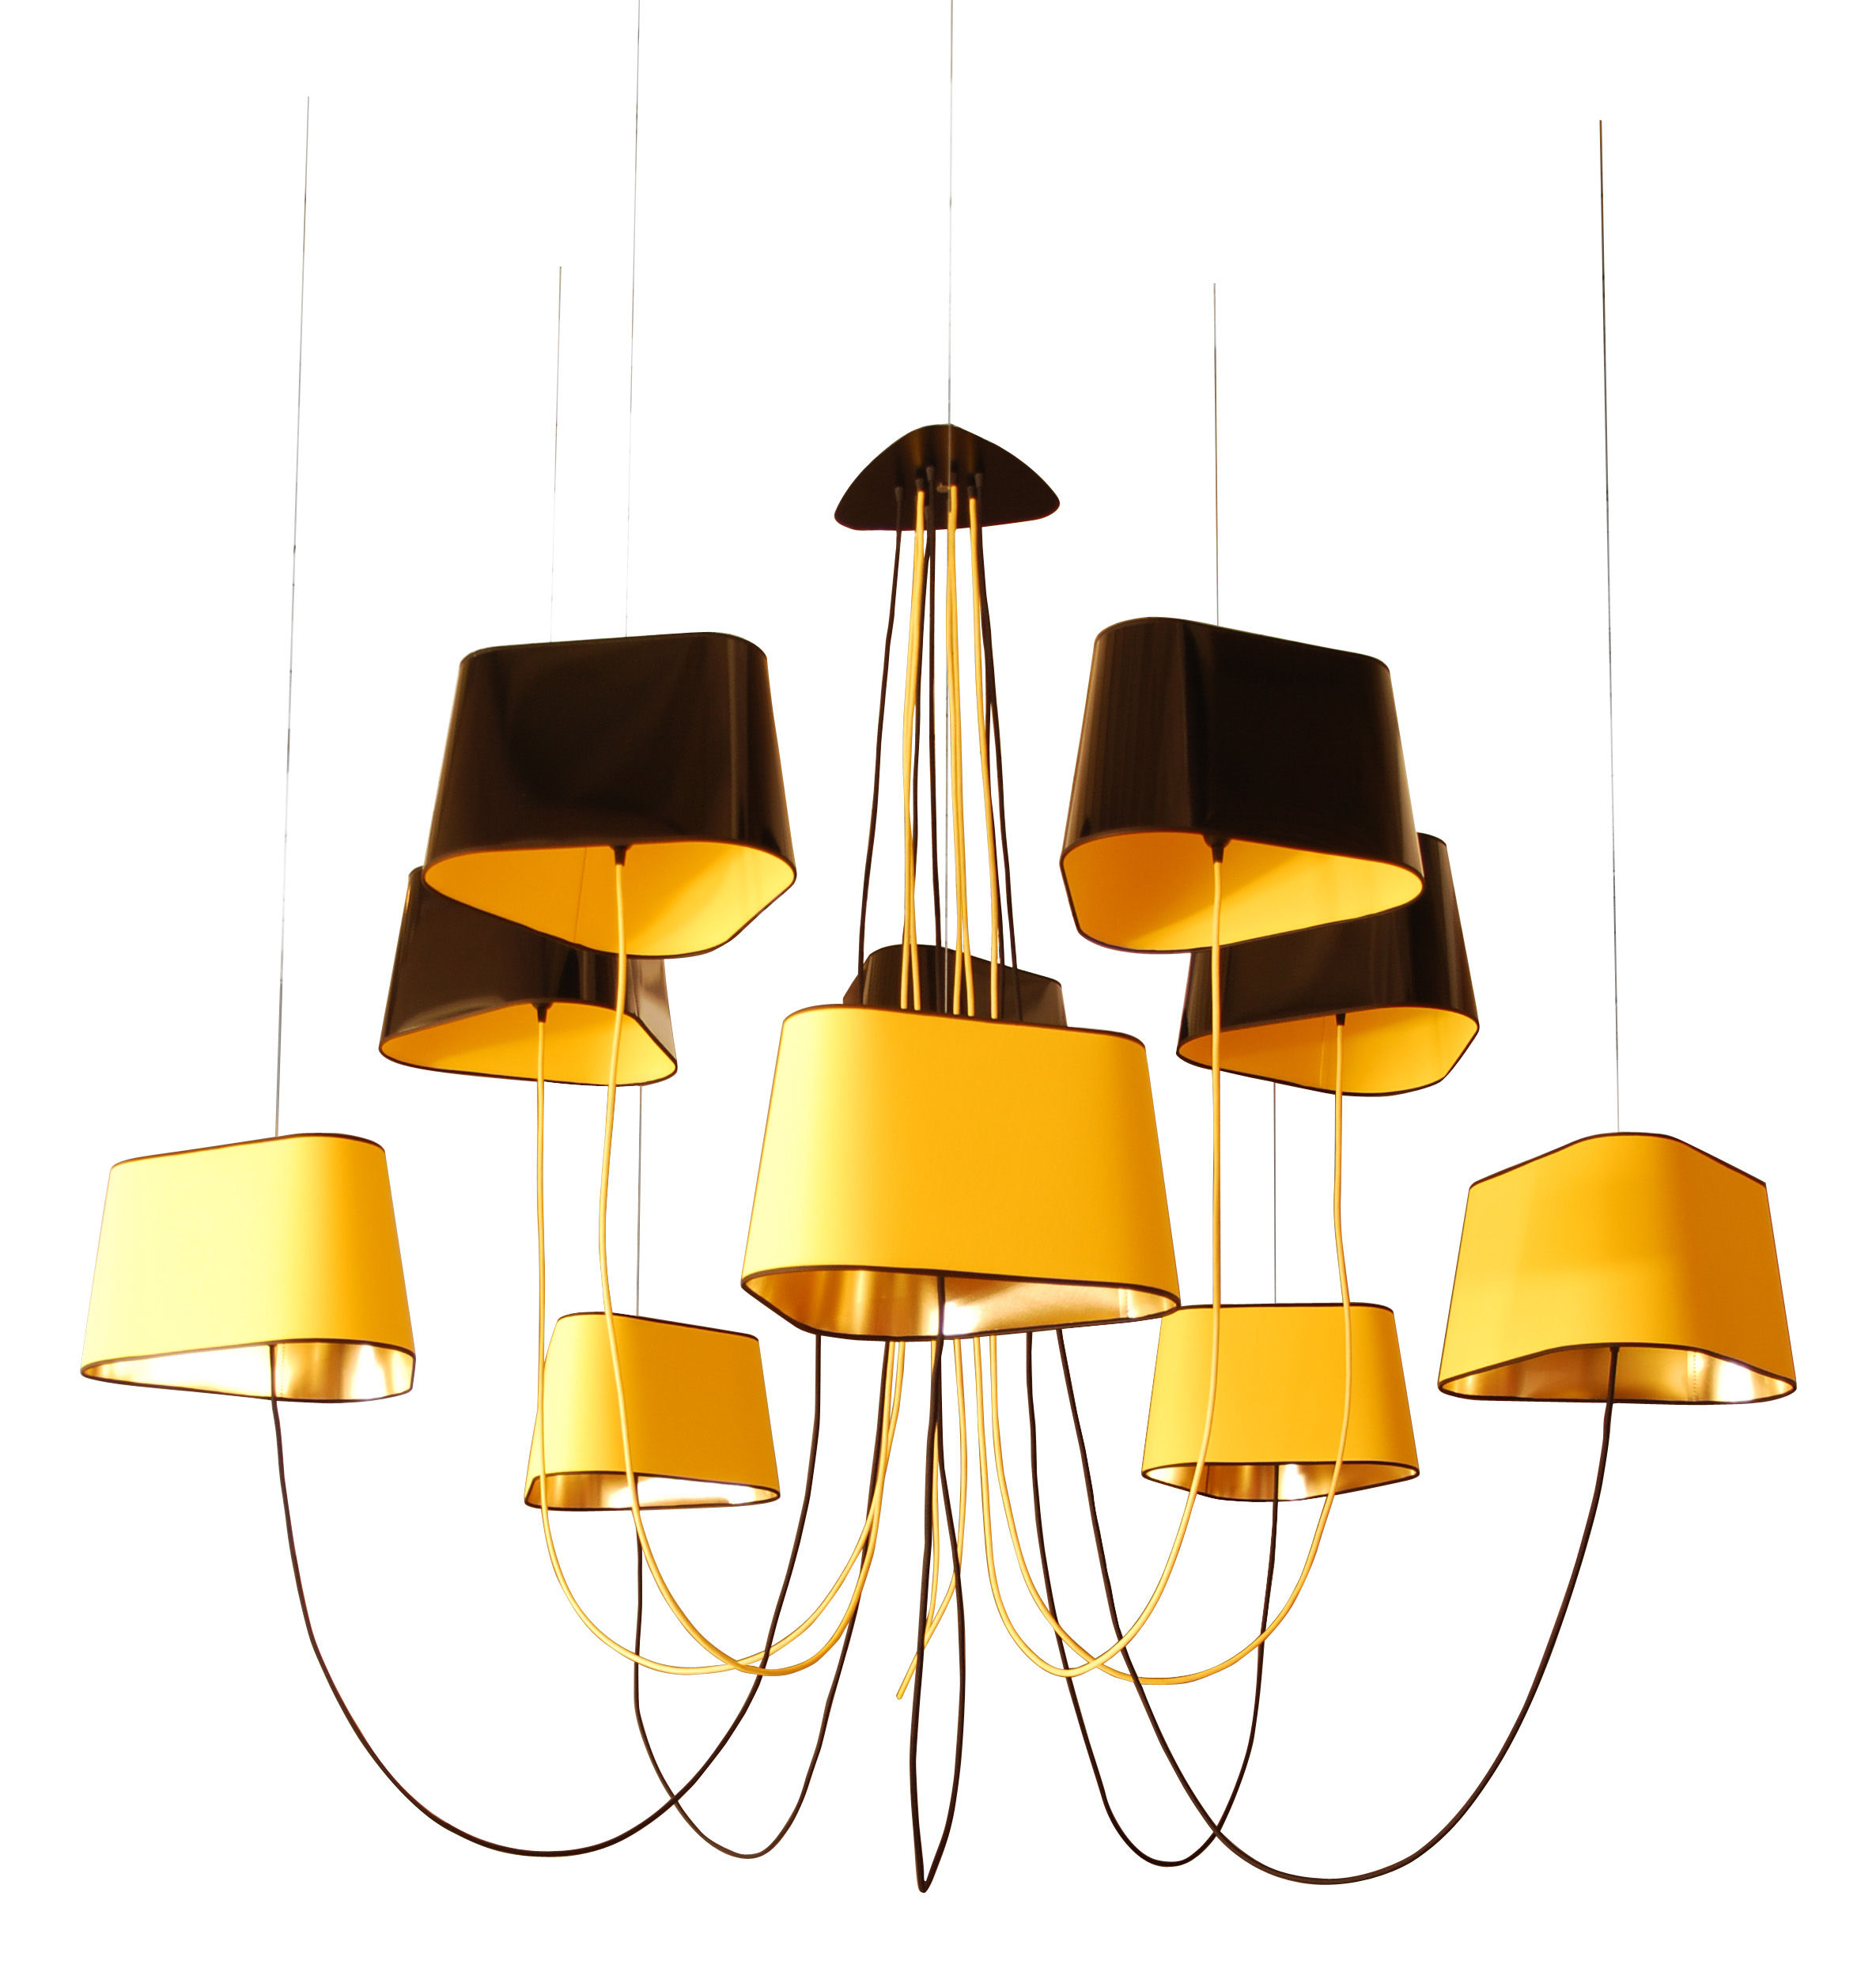 Suspension Luminaire Grand Diametre Suspension Grand Nuage 10 Abat Jours Noir Jaune Or